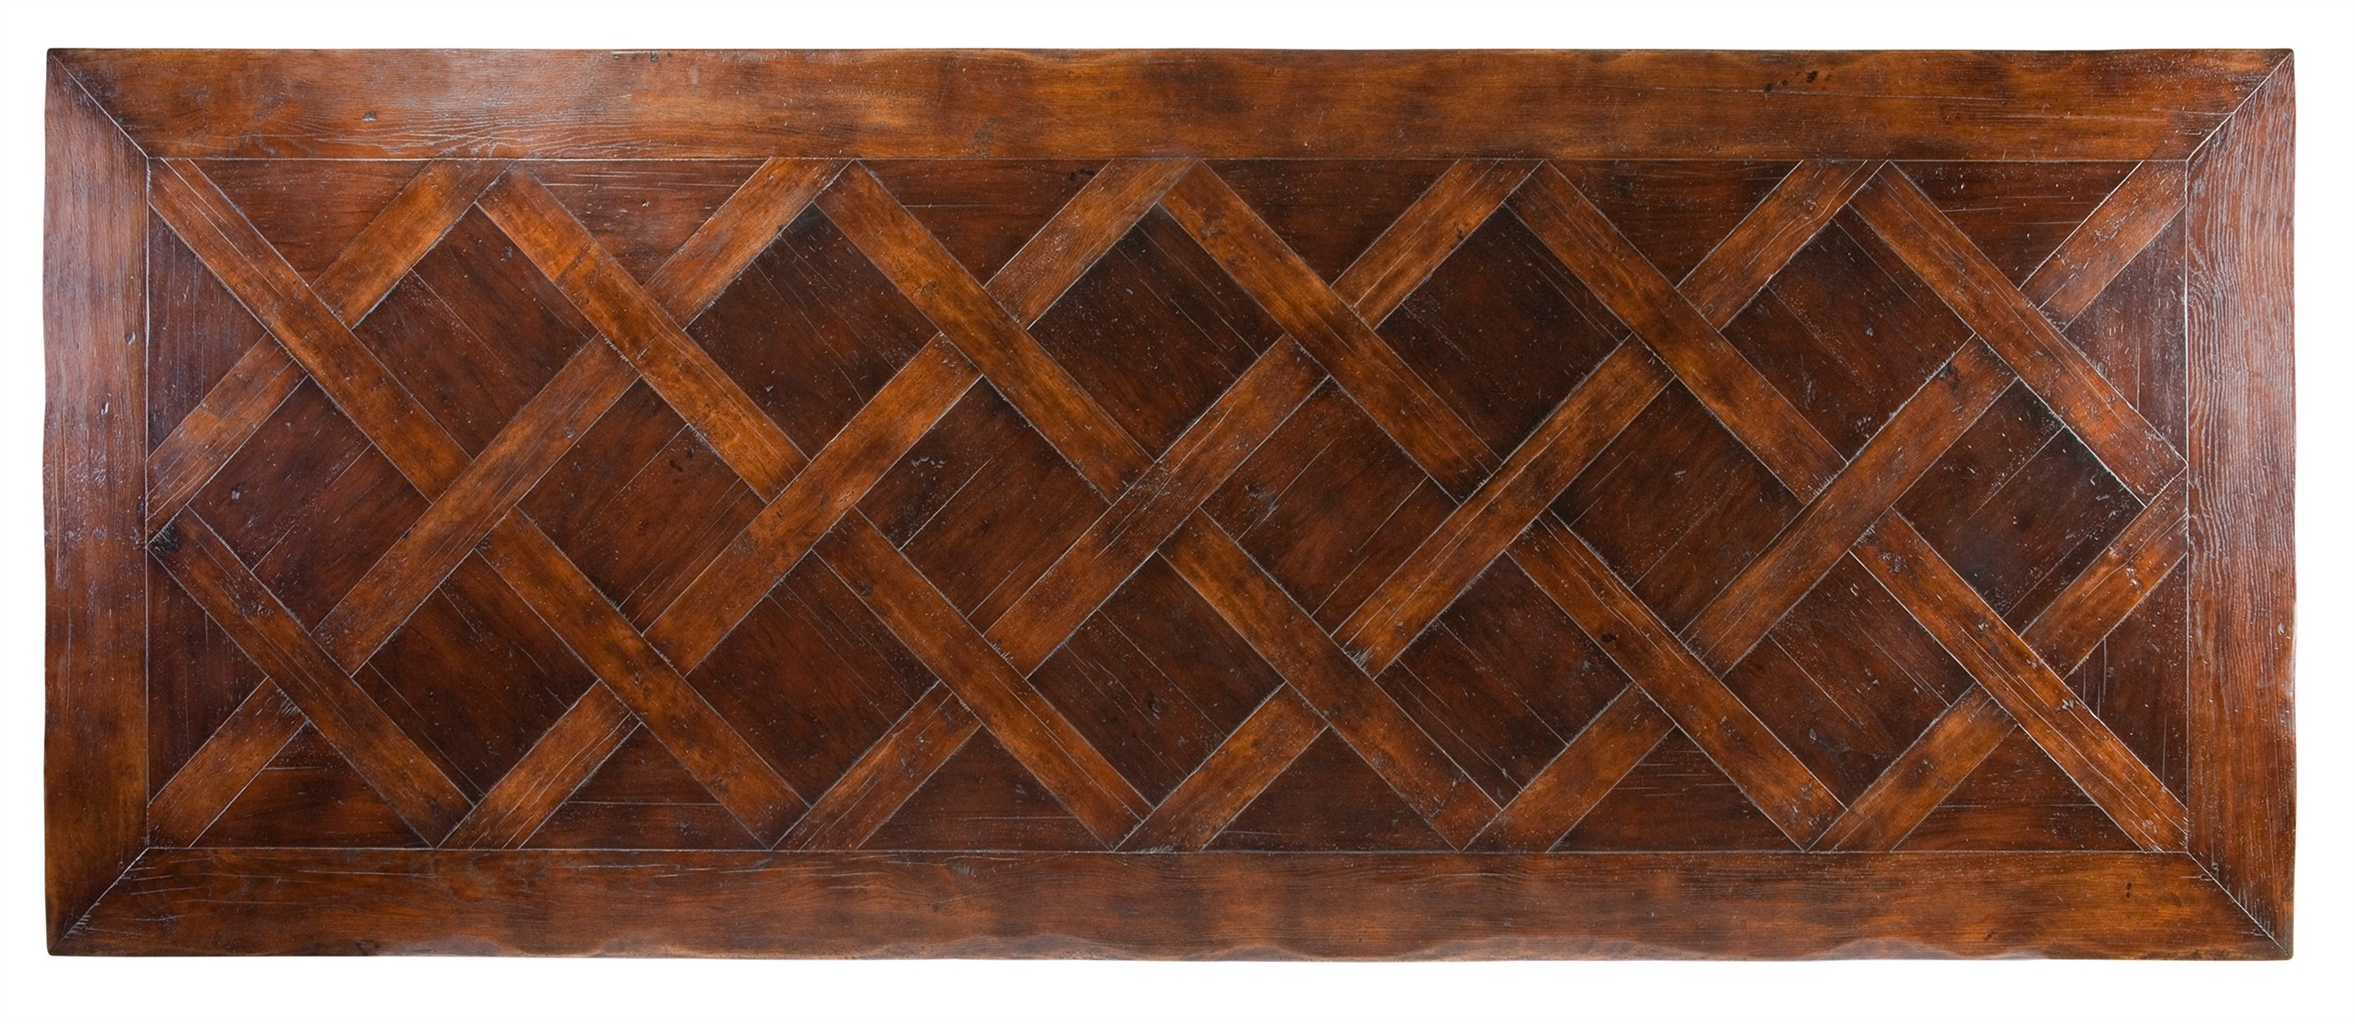 Dining Tables Luxury Basket Weave Pattern Dining Table